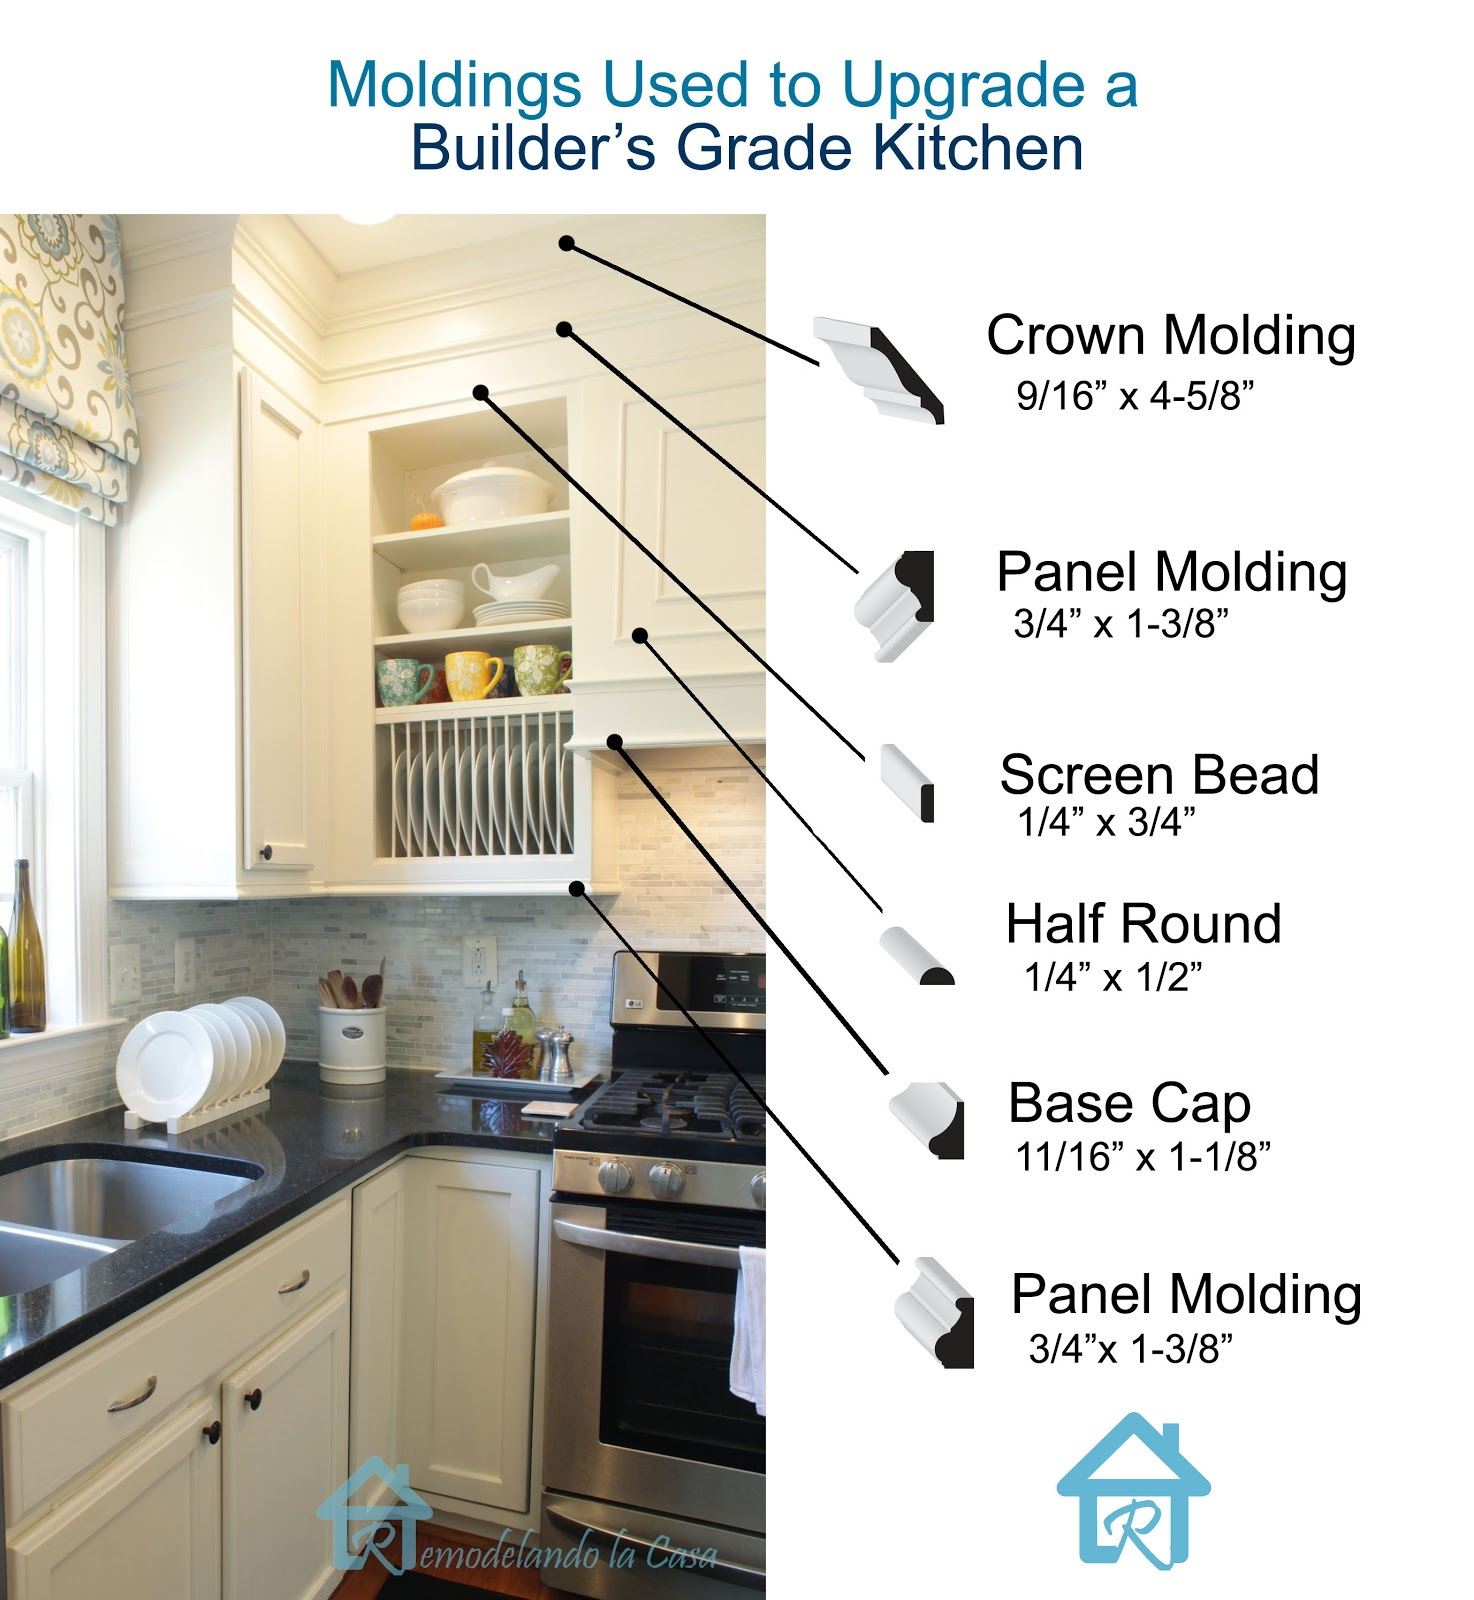 Types Of Crown Molding For Kitchen Cabinets Adding Crown Molding To The Top Of Bookcases Remodelando